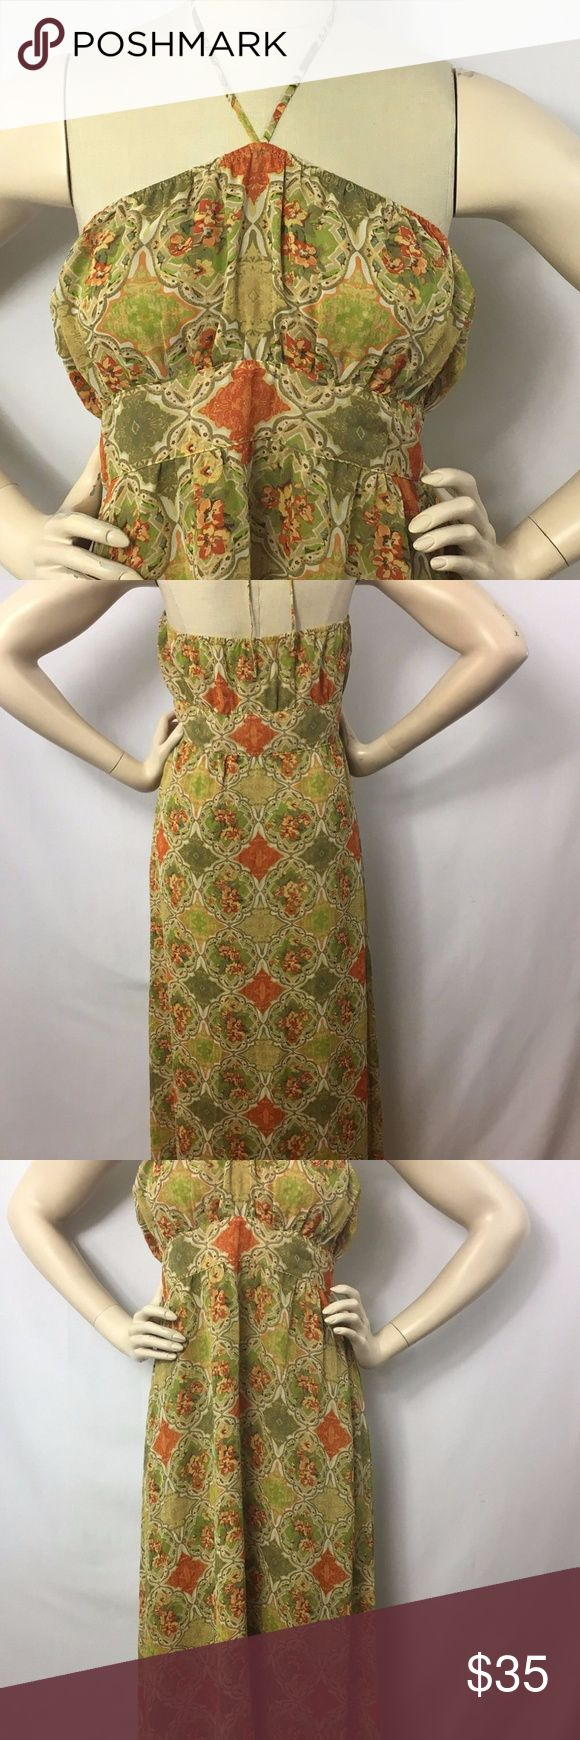 Banana Republic Maxi Dress Size 12 Tan Floral Brand Banana Republic  Size 12 Color tan, green and orange Lined yes Fabric 100% silk Length full length maxi  Neckline halter top Pattern geometric with flowers Side invisible zipper Empire waist   Condition Used: no stains or holes  Measurements   Previously owned items may have been altered. Please refer to the following measurements to insure a proper fit. All measurements are taken with the item lying flat. Armpit to armpit 16 1/2 inches…